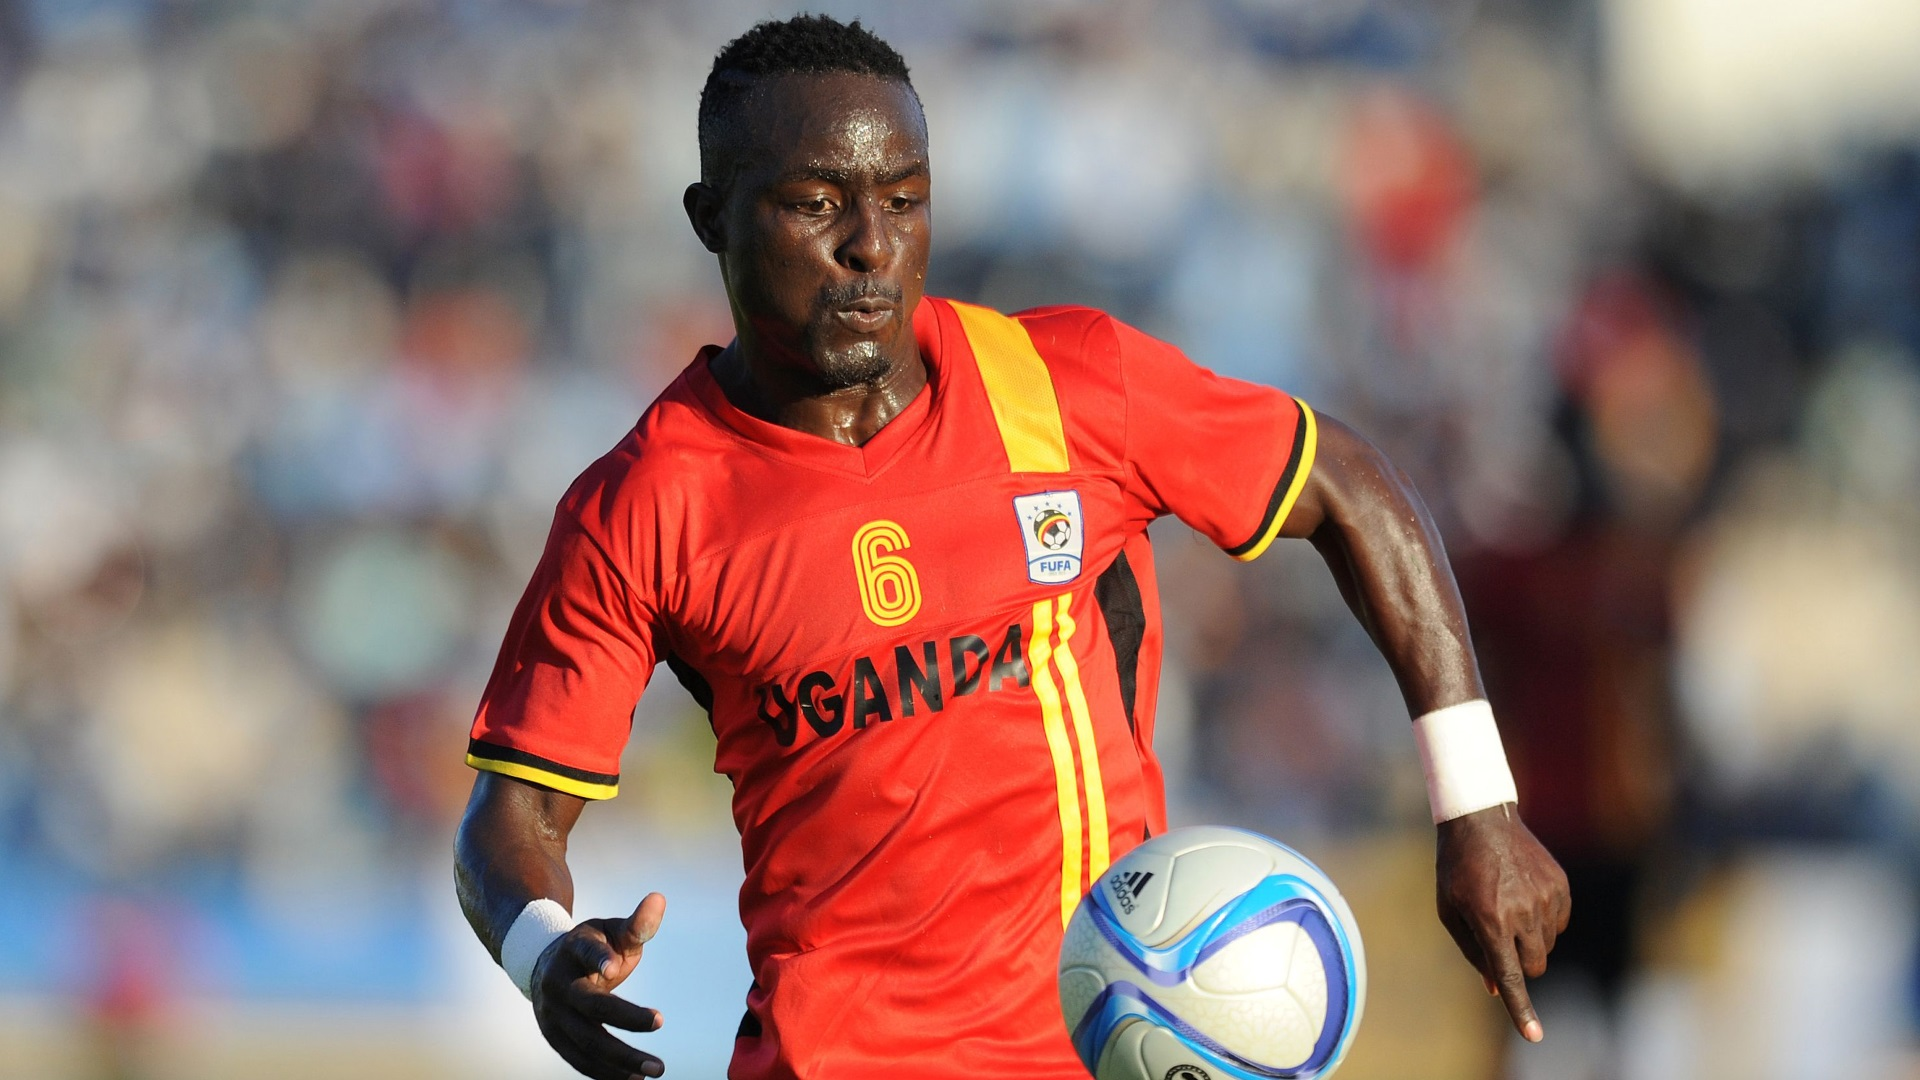 'Uganda players ready to prove they deserve places in Chan' - Mawejje